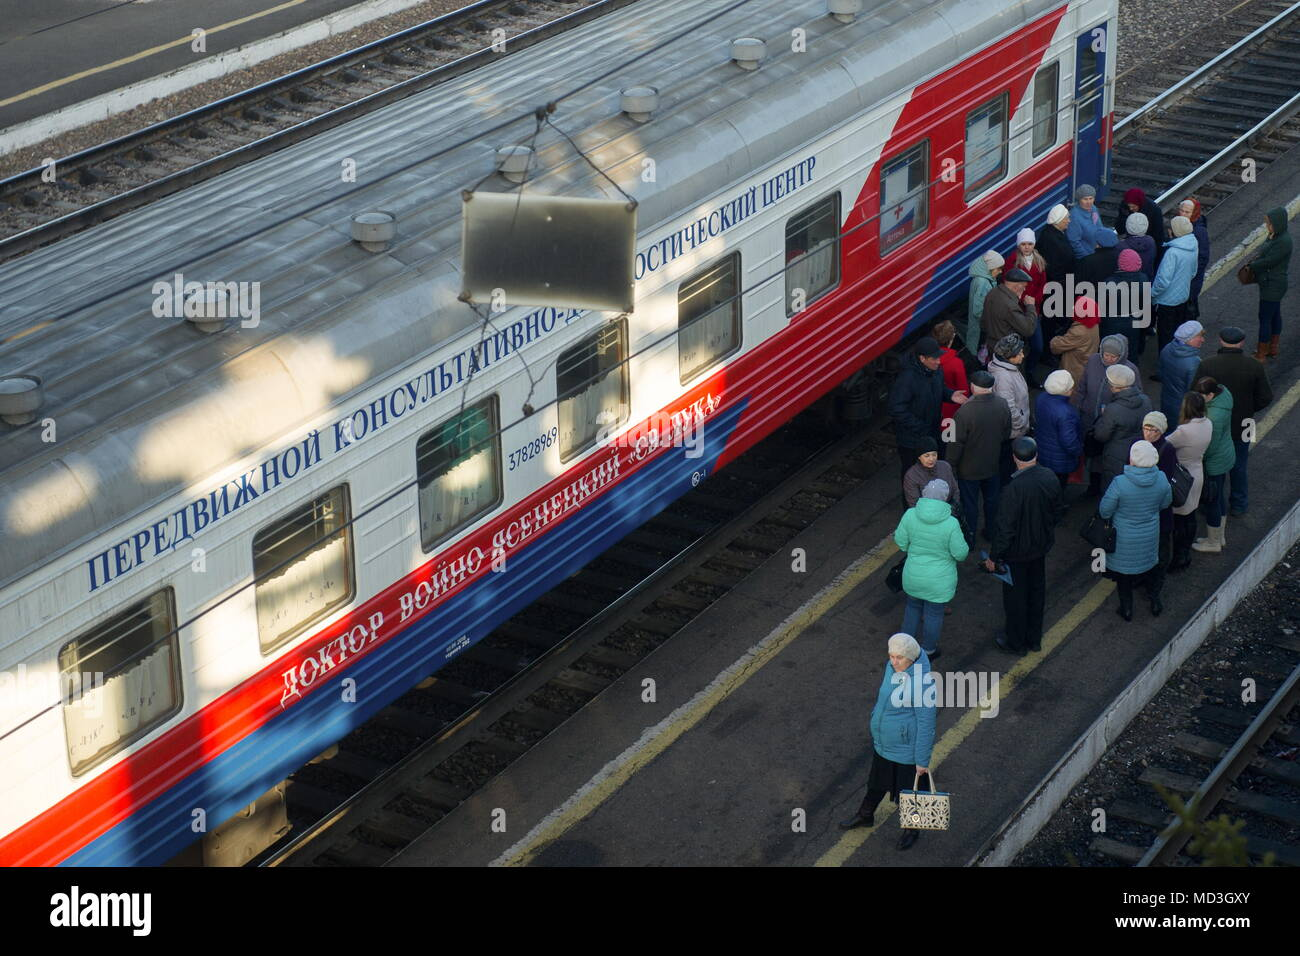 KRASNOYARSK TERRITORY, RUSSIA - APRIL 16, 2018: A train